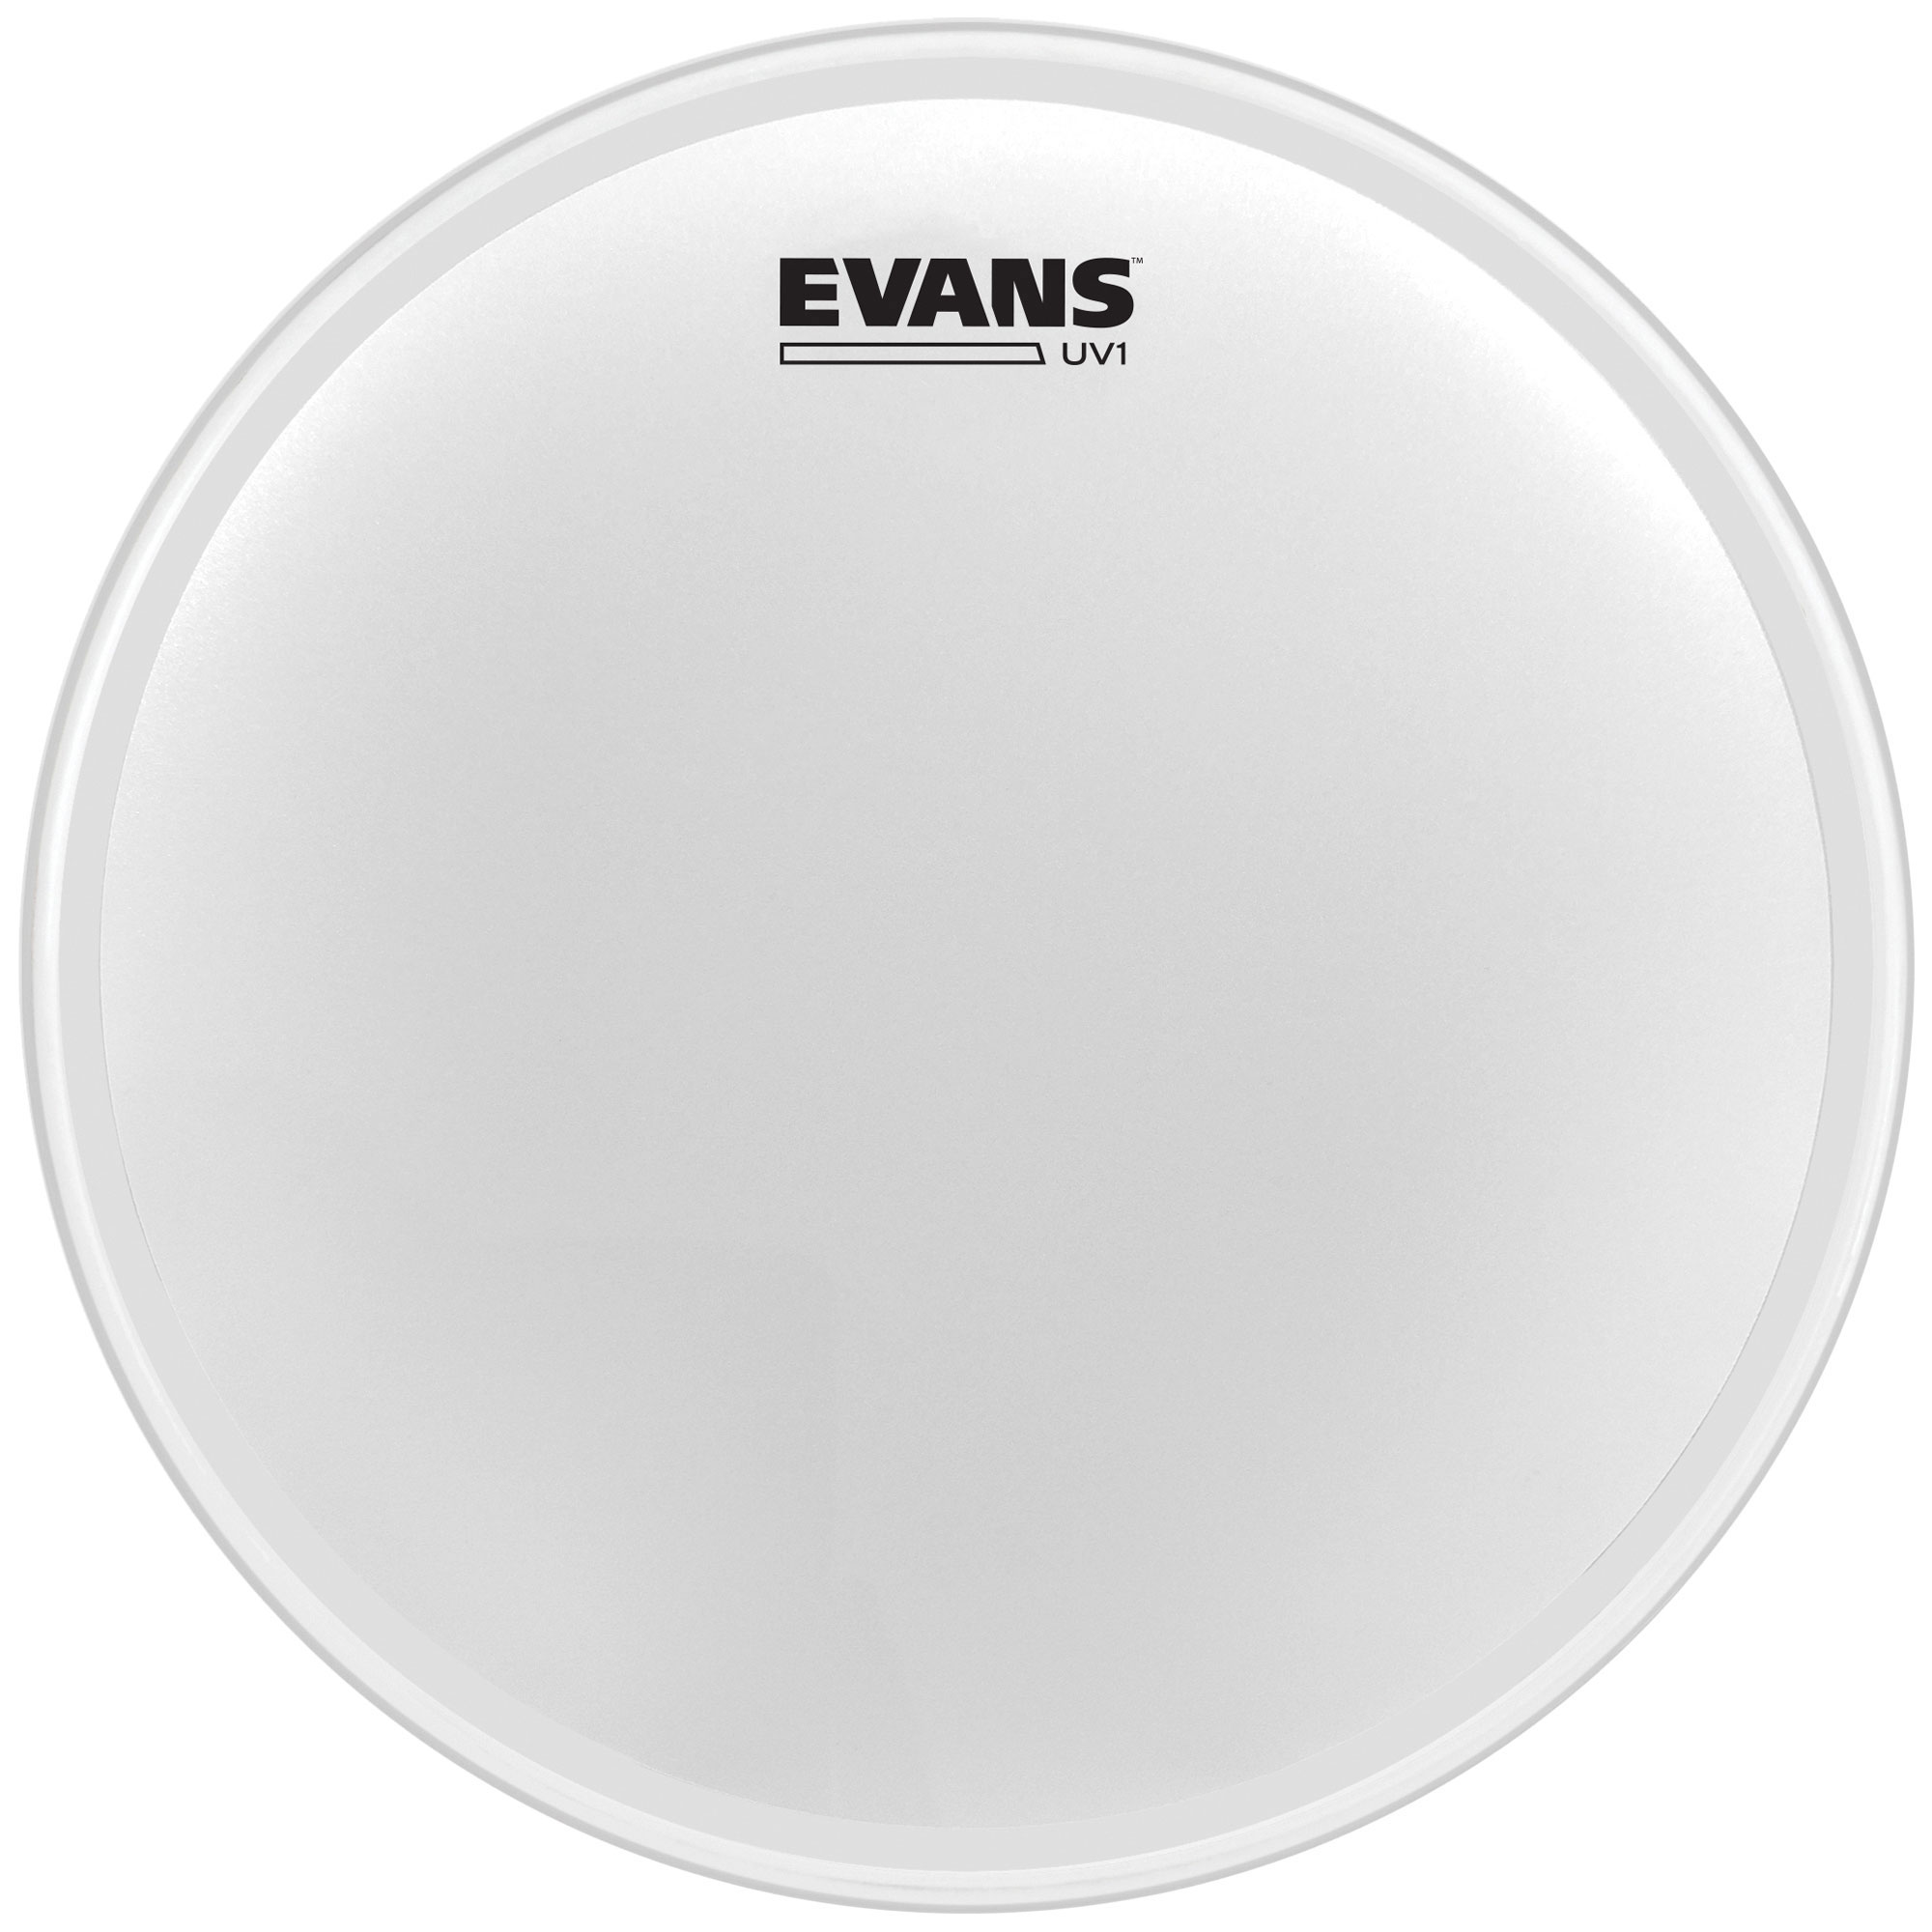 "Evans 16"" UV1 Coated Drum Head"